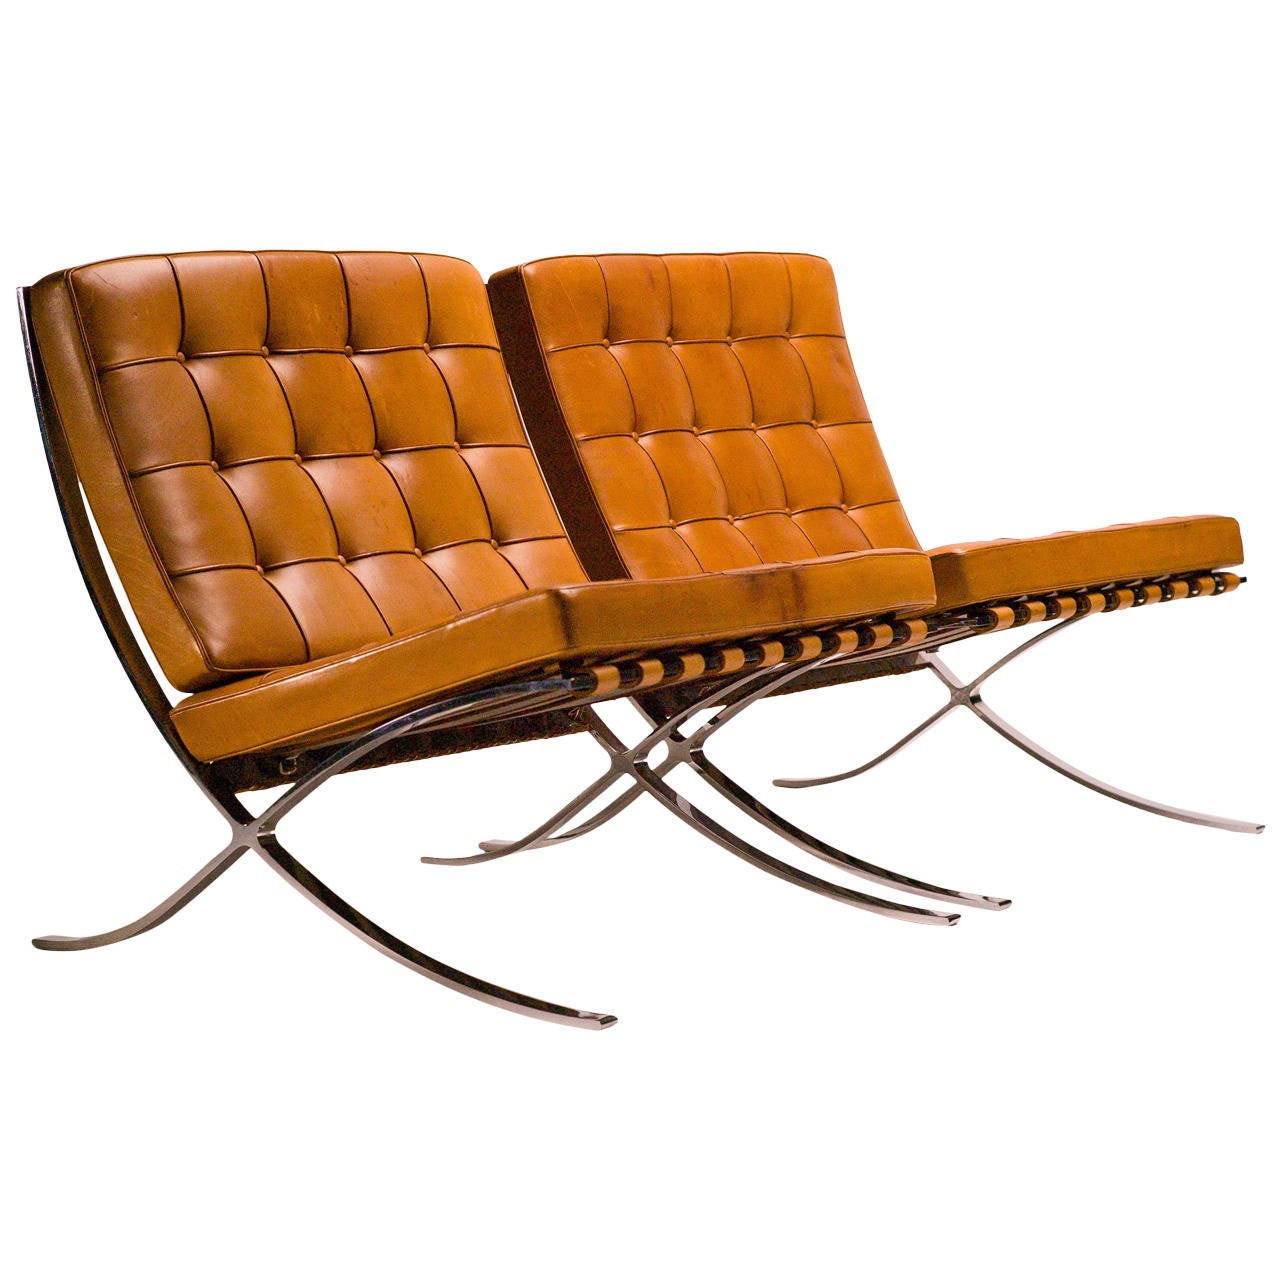 barcelona chairs in saddle leather by mies van der rohe for knoll